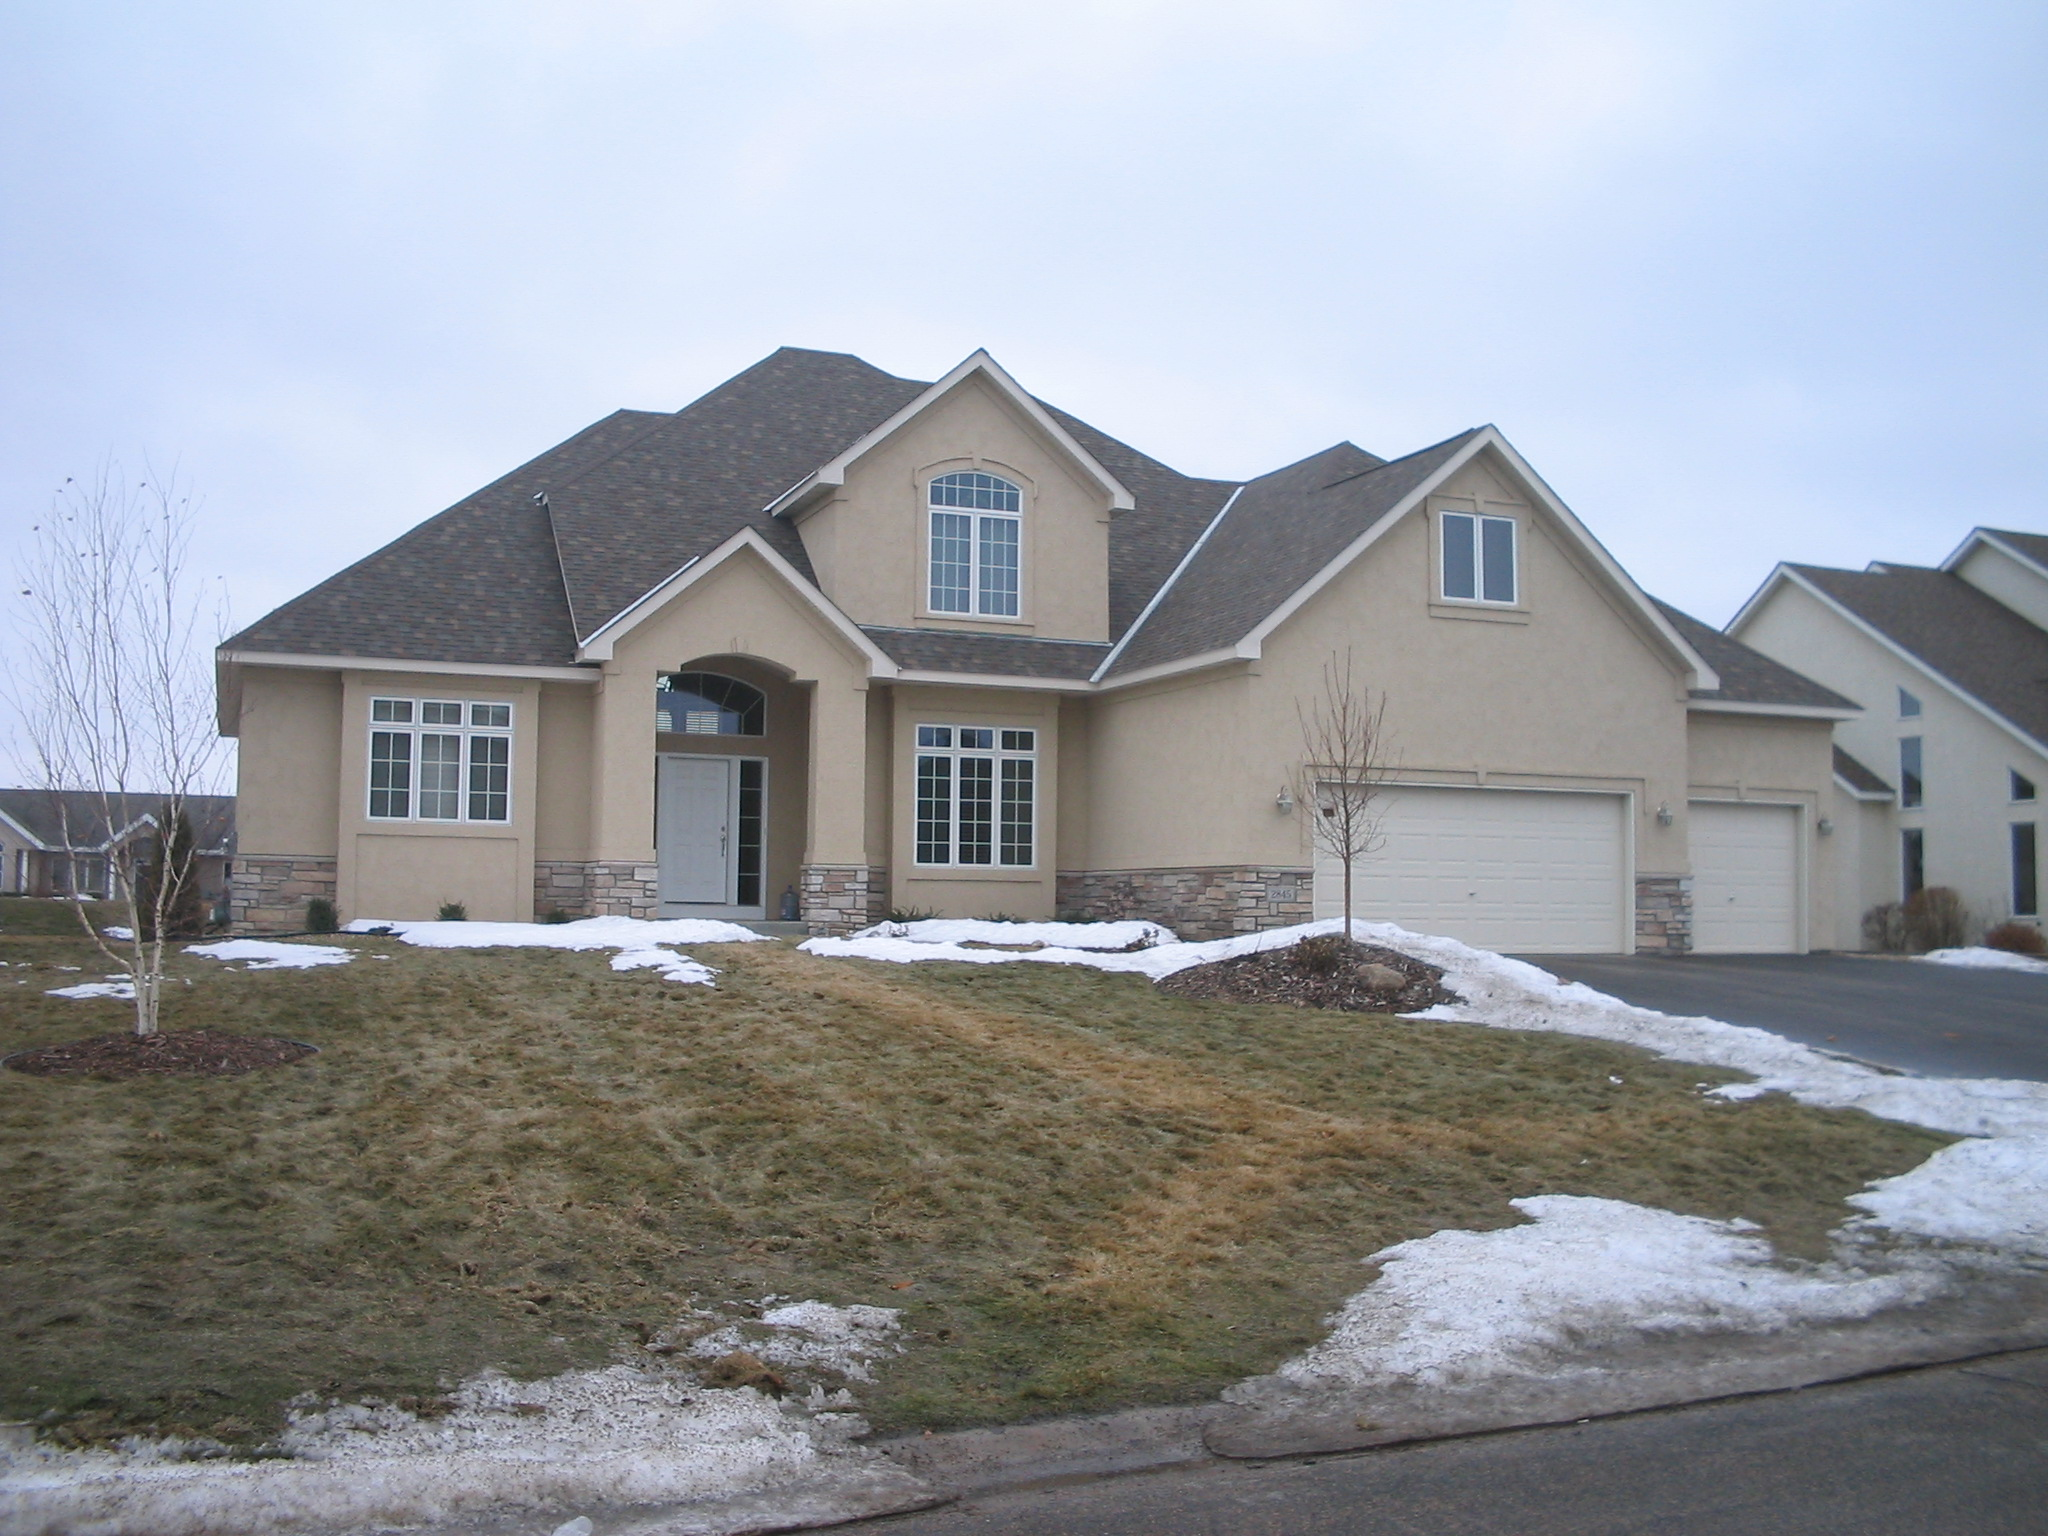 Stucco Homes Colors Stunning White Stucco House With Dark Trim With